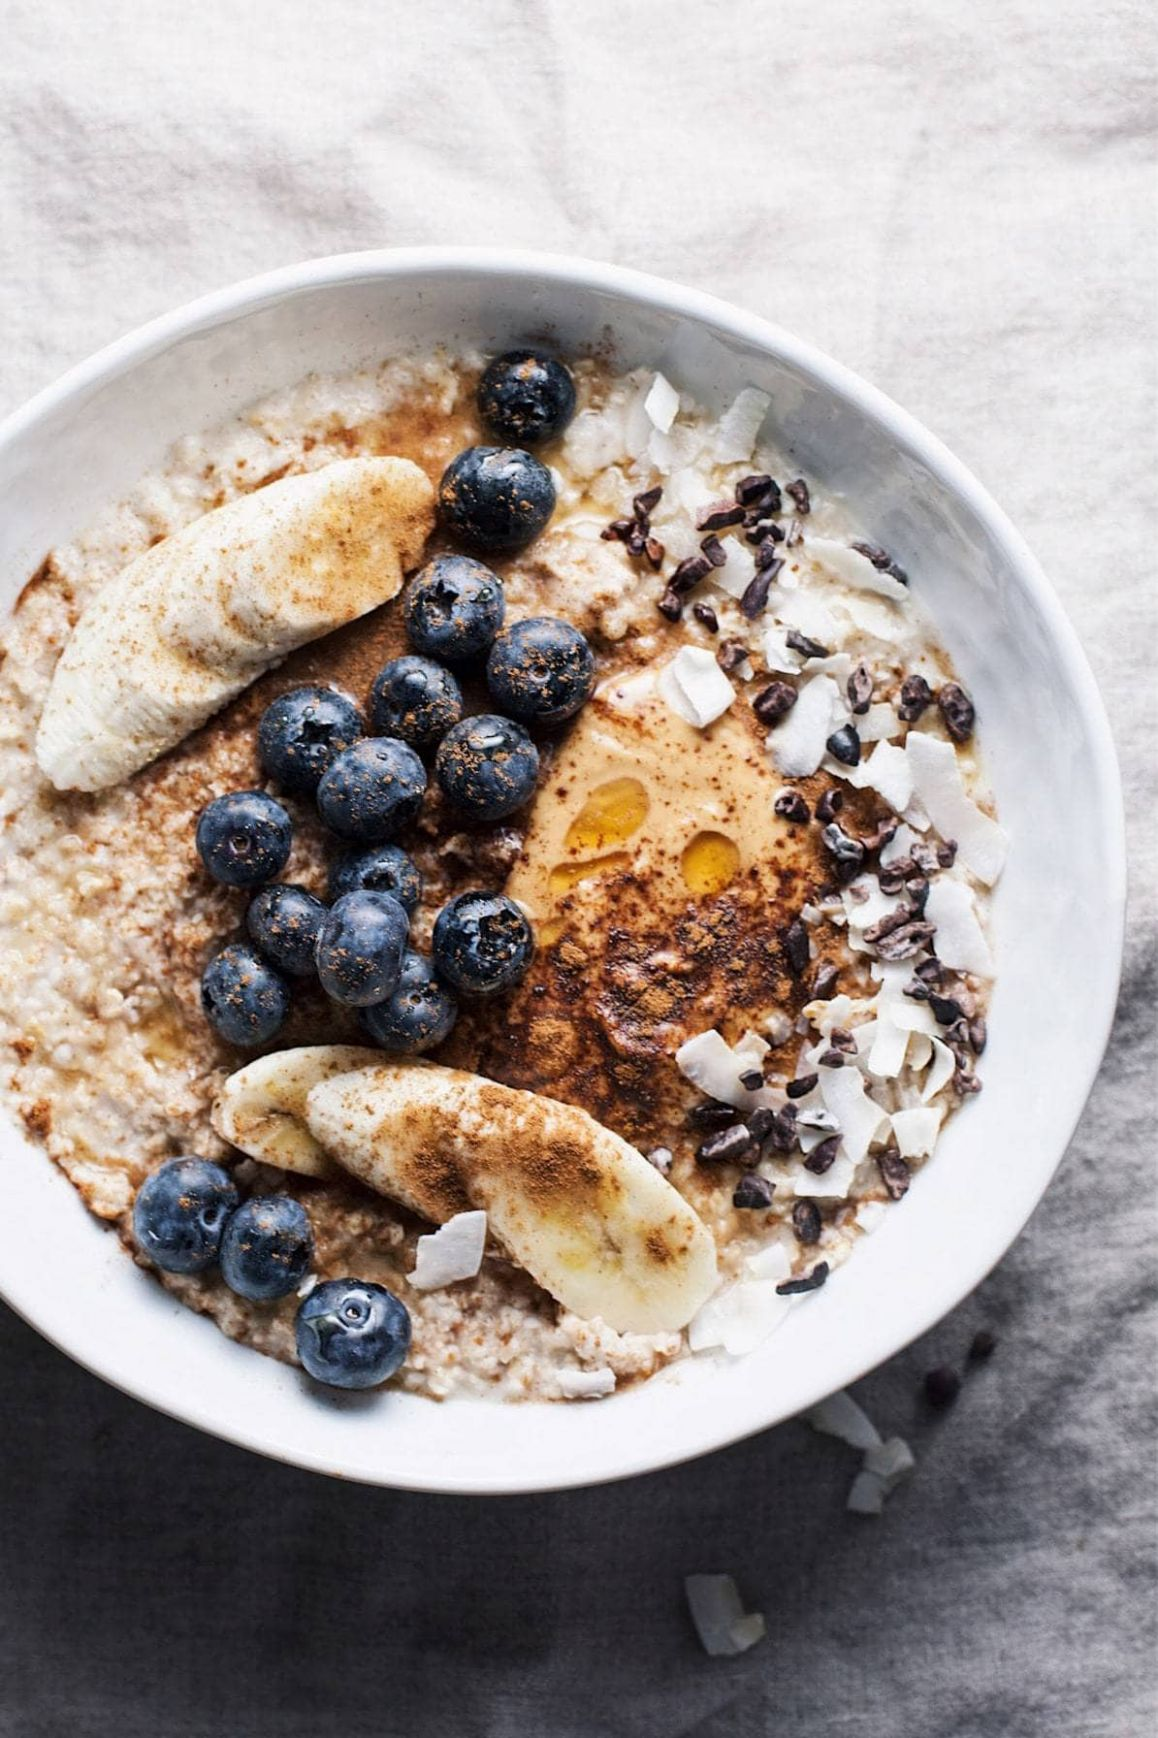 Healthy Peanut Butter Oatmeal Bowl - Healthy Recipes Oats